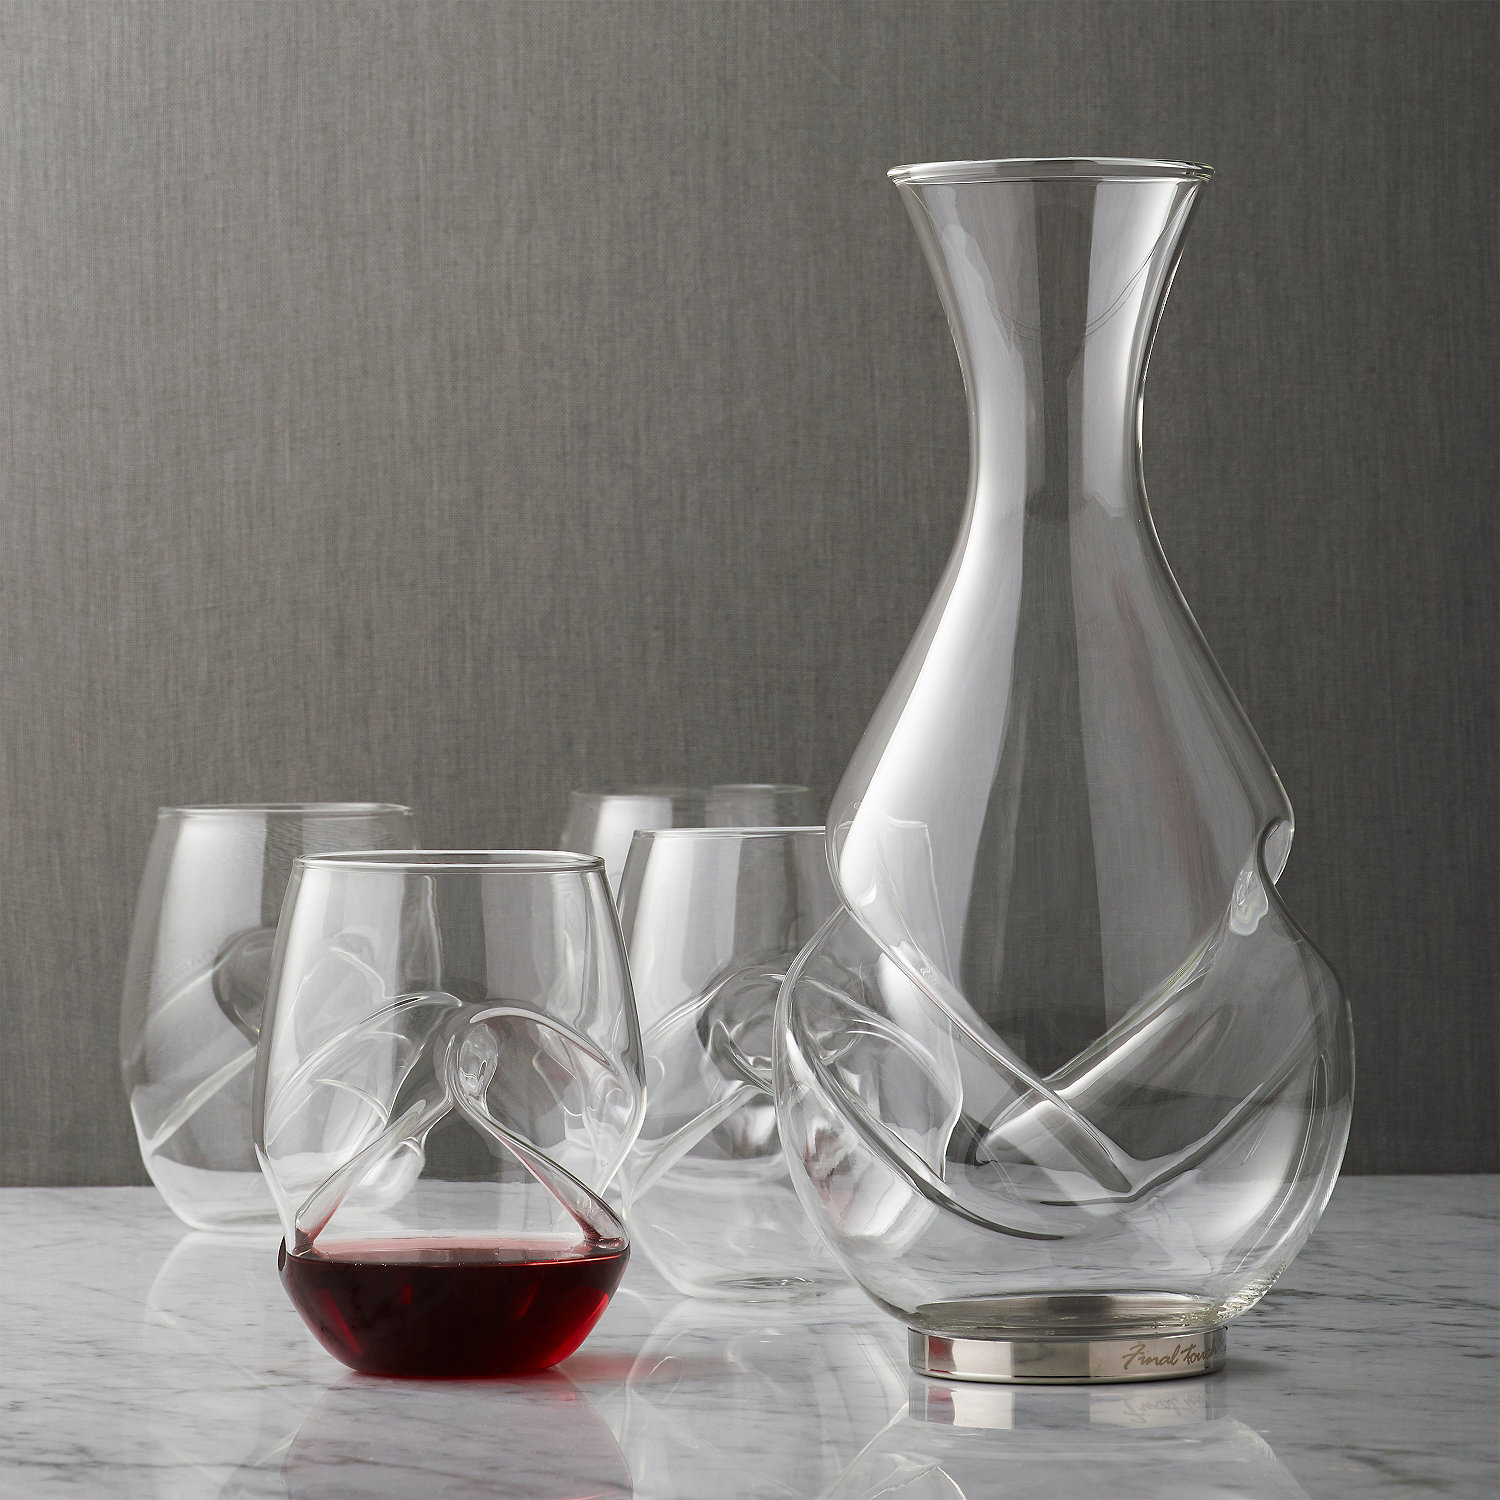 Decanter Wine Glas Aerating Decanter And Wine Glass Set